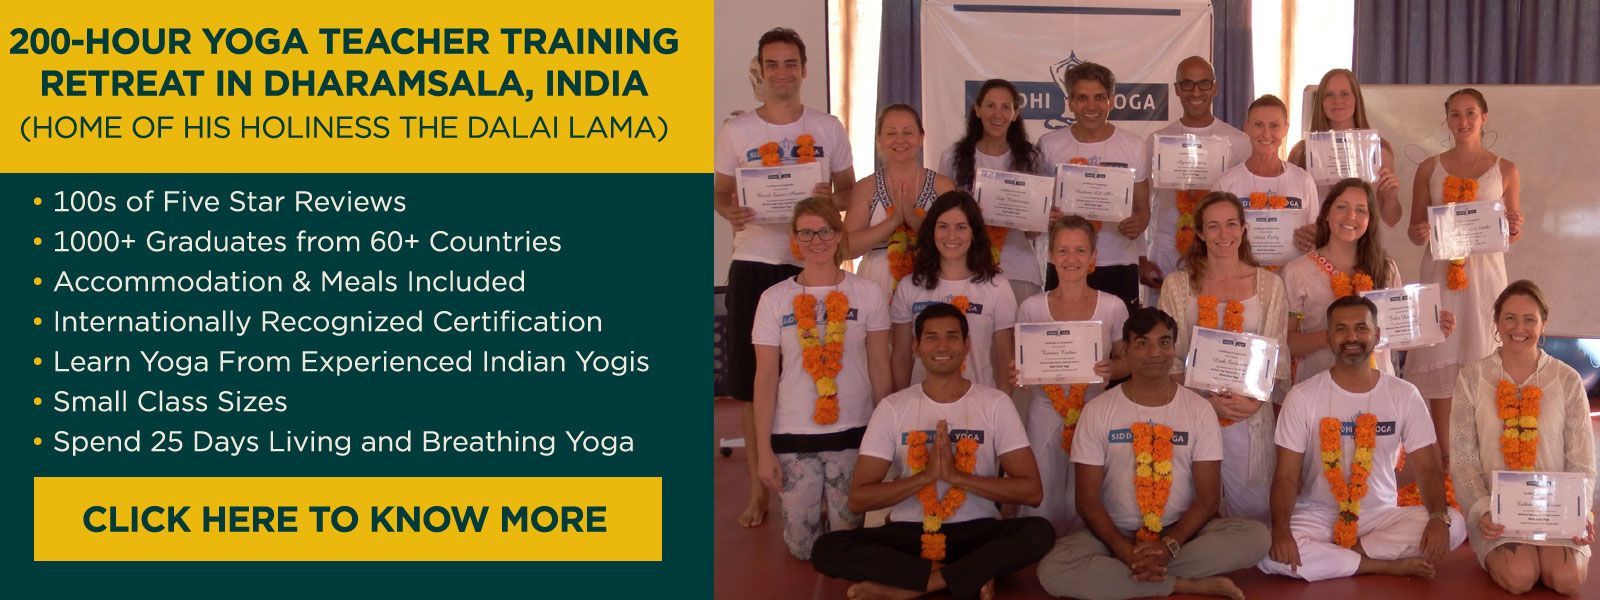 yoga teacher training dharamsala 2019